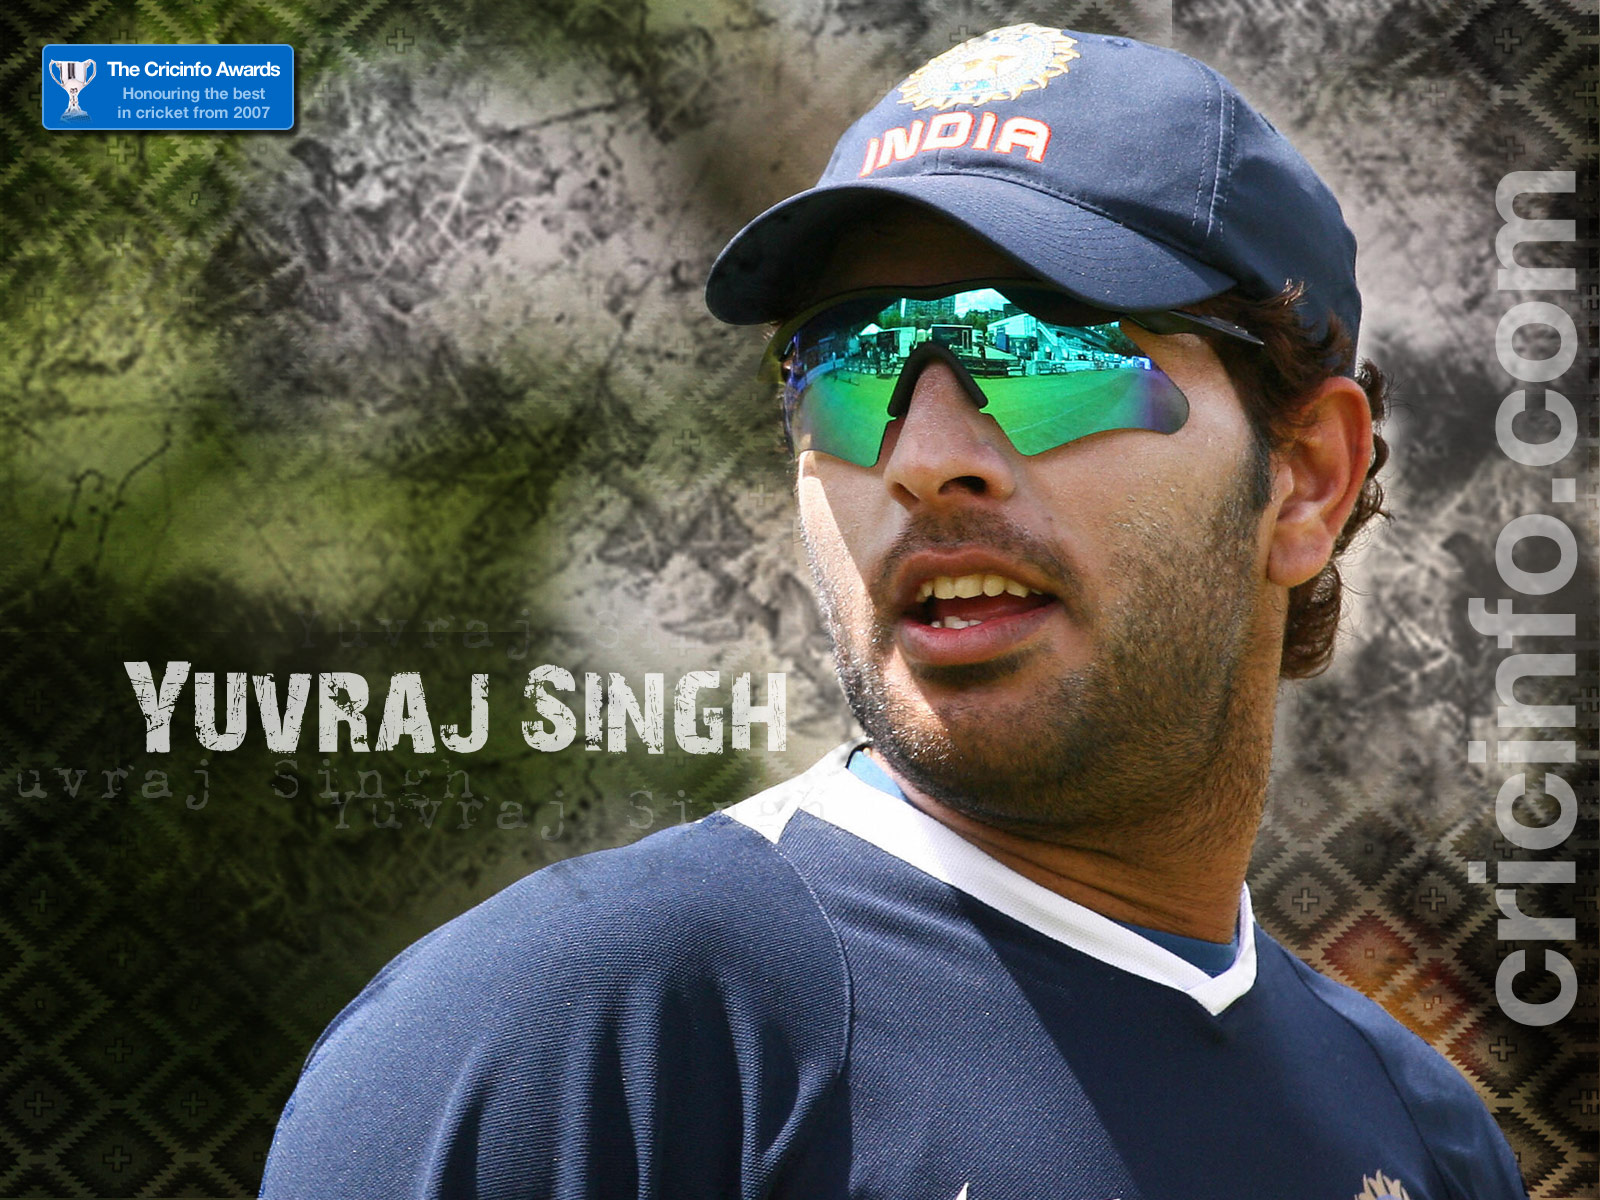 Yuvraj Singh, winner T20 batting